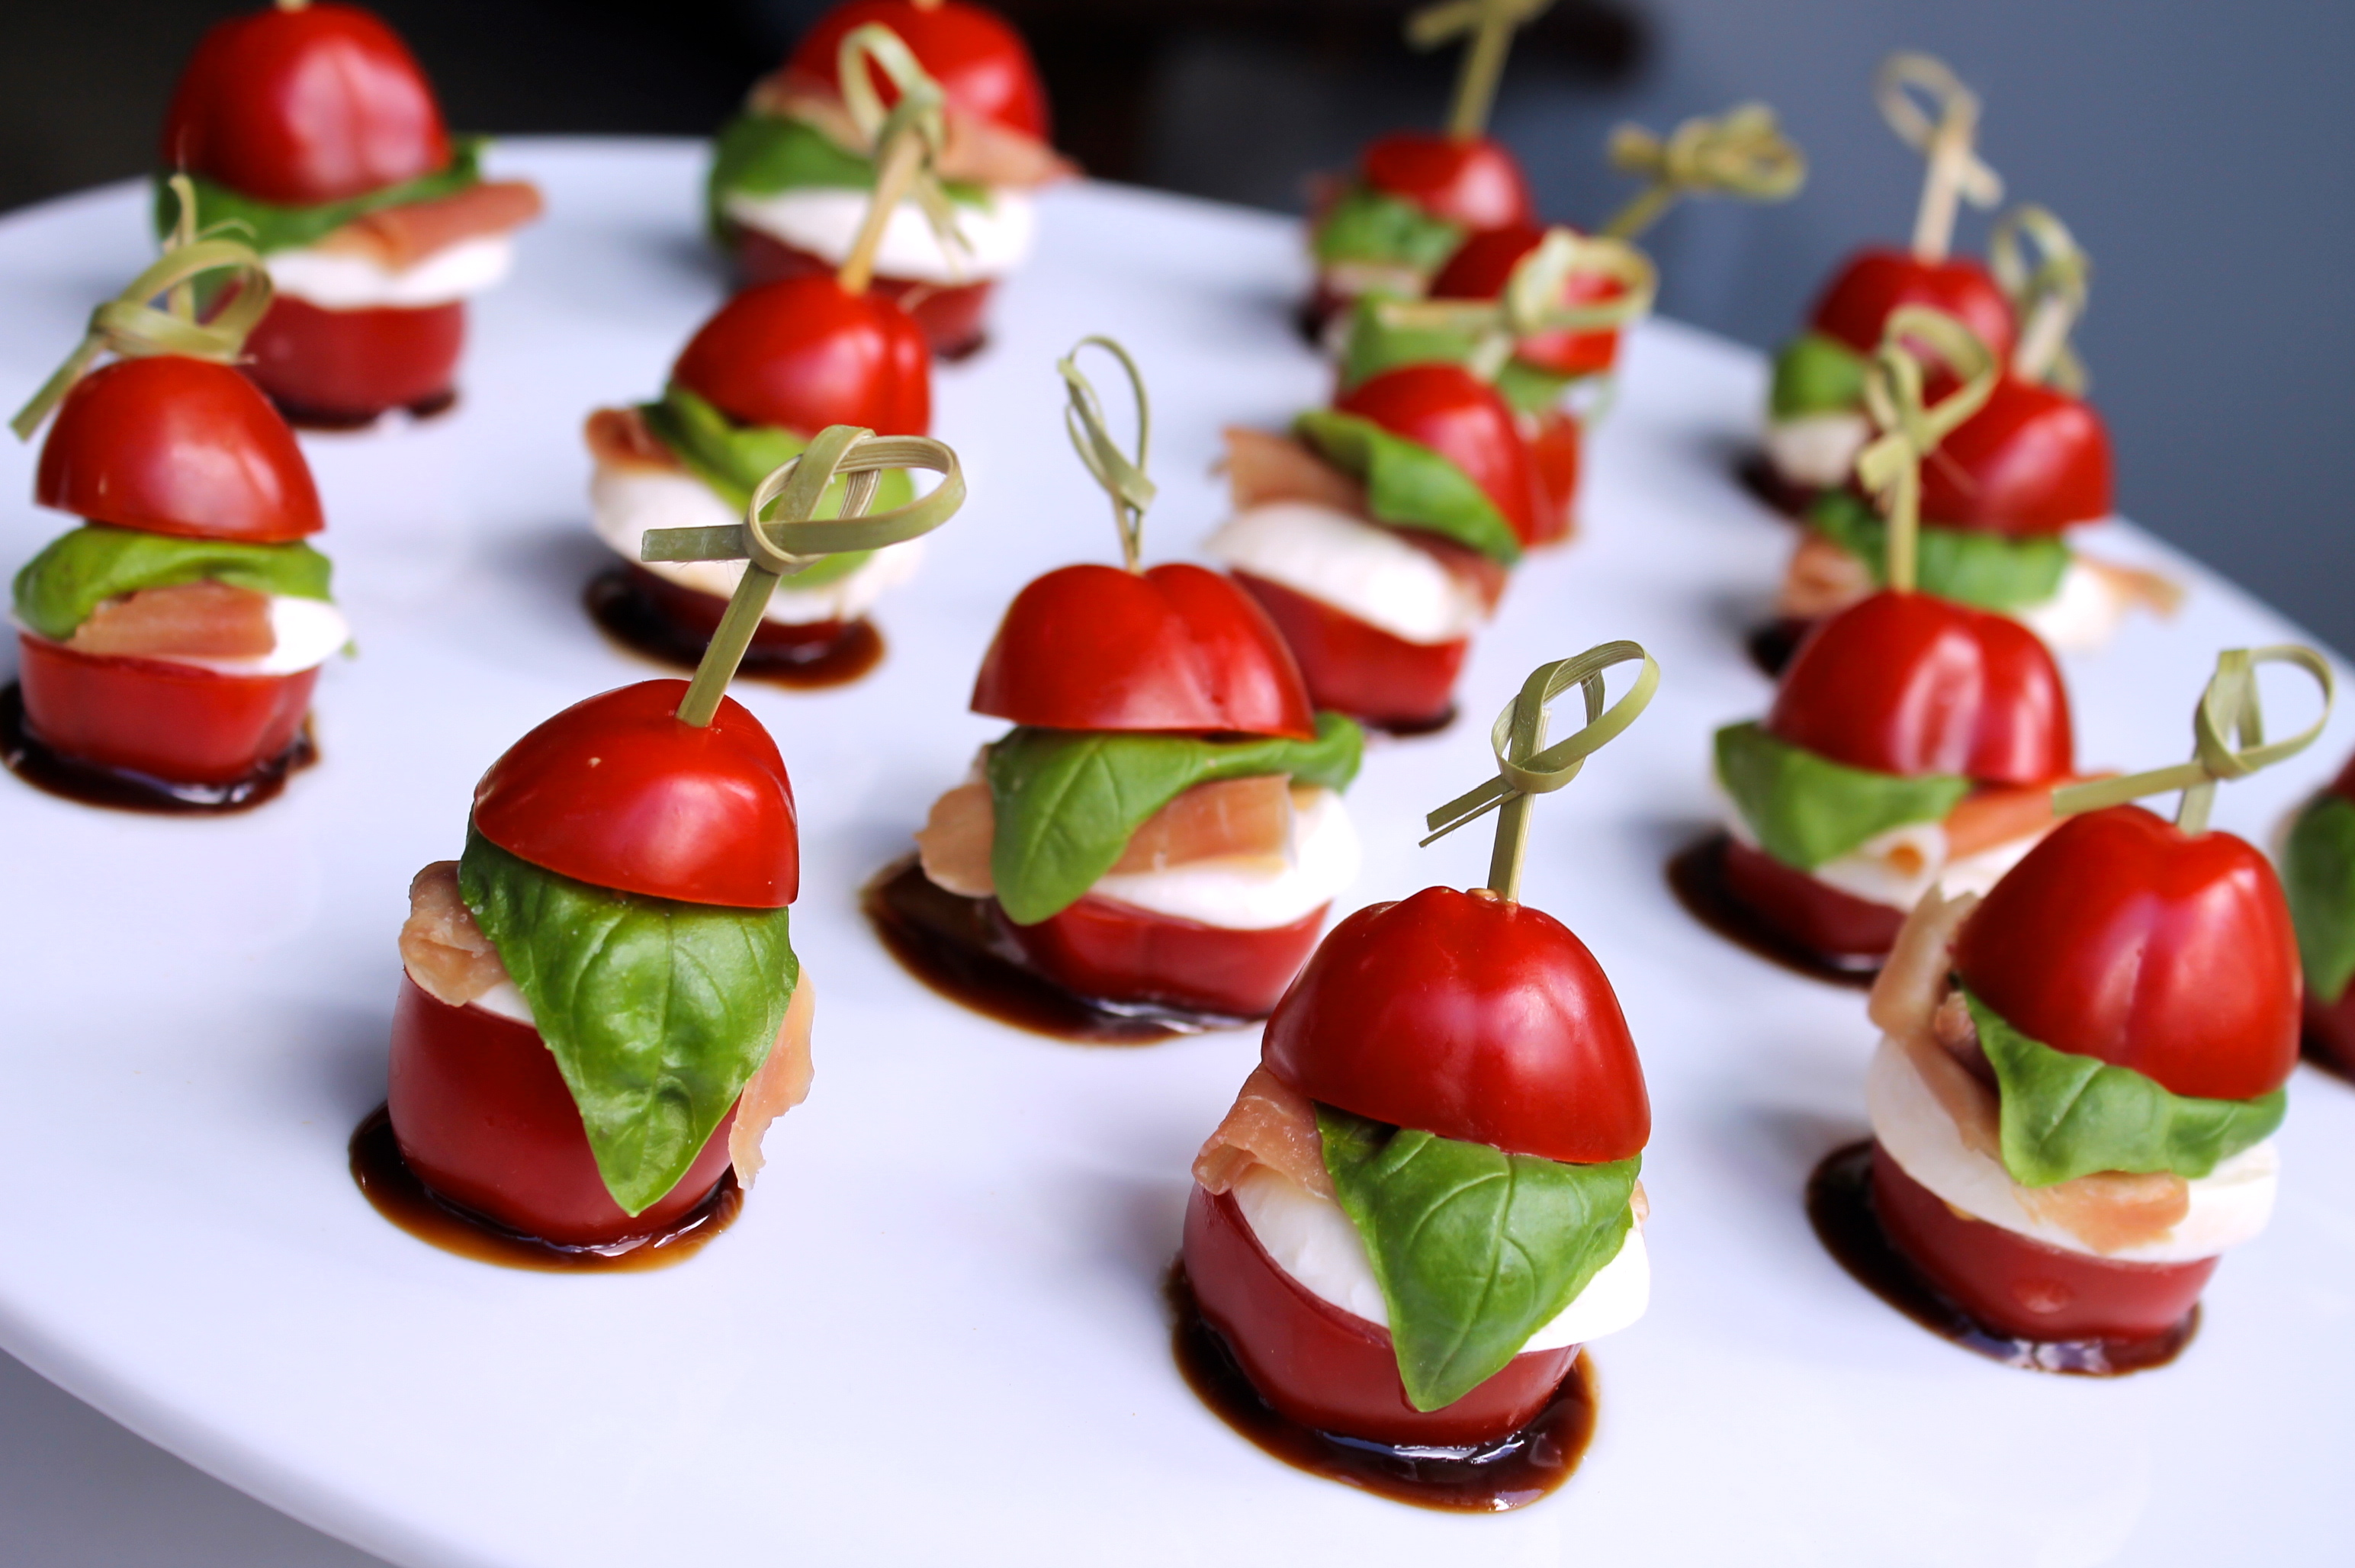 Christmas canap s santap s for Canape ideas for party